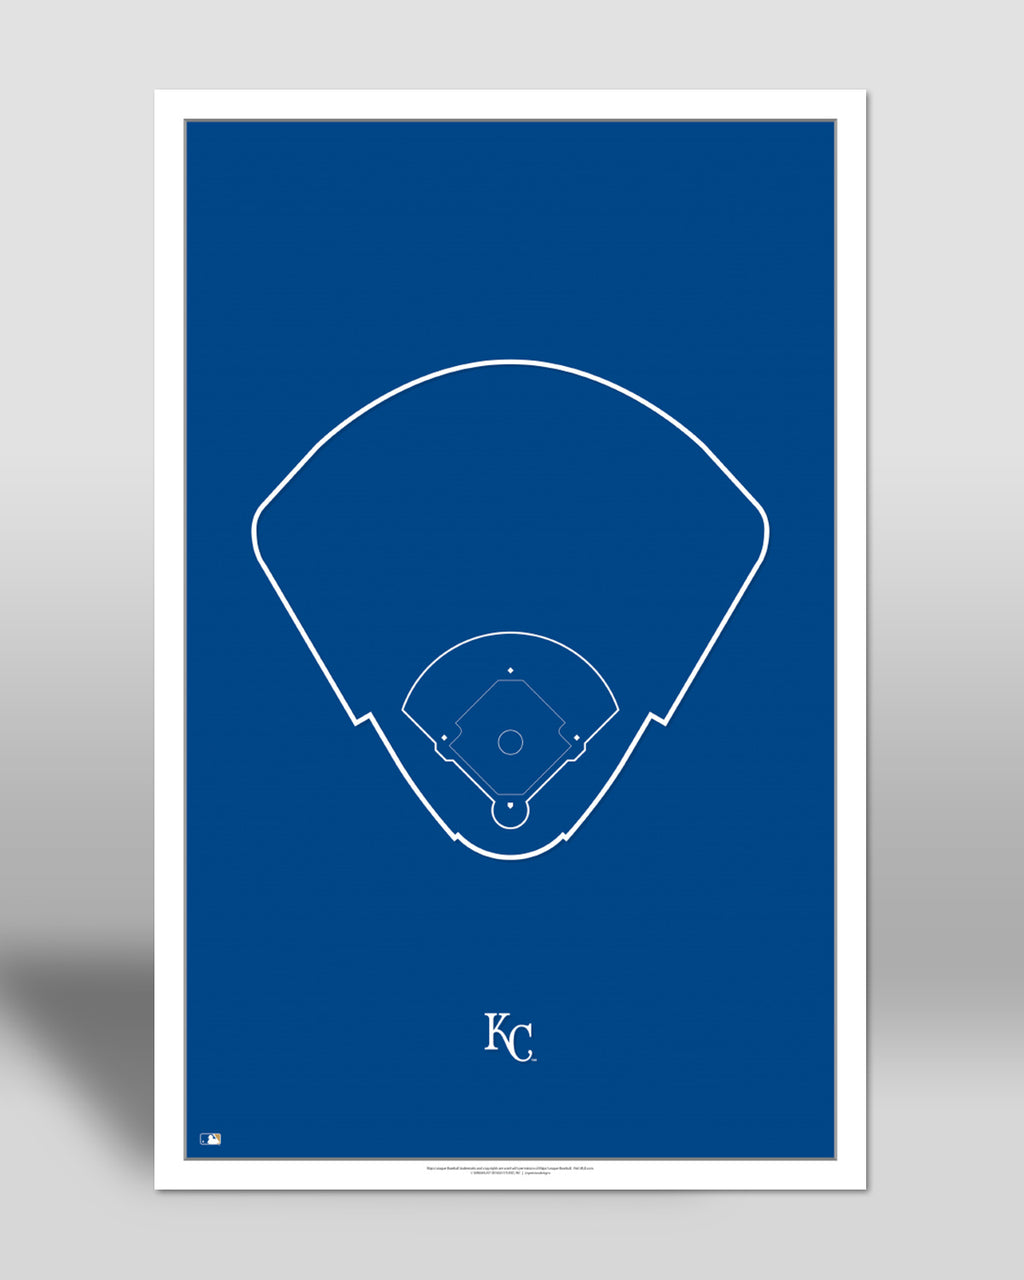 MLB Outline Ballpark - Kauffman Stadium